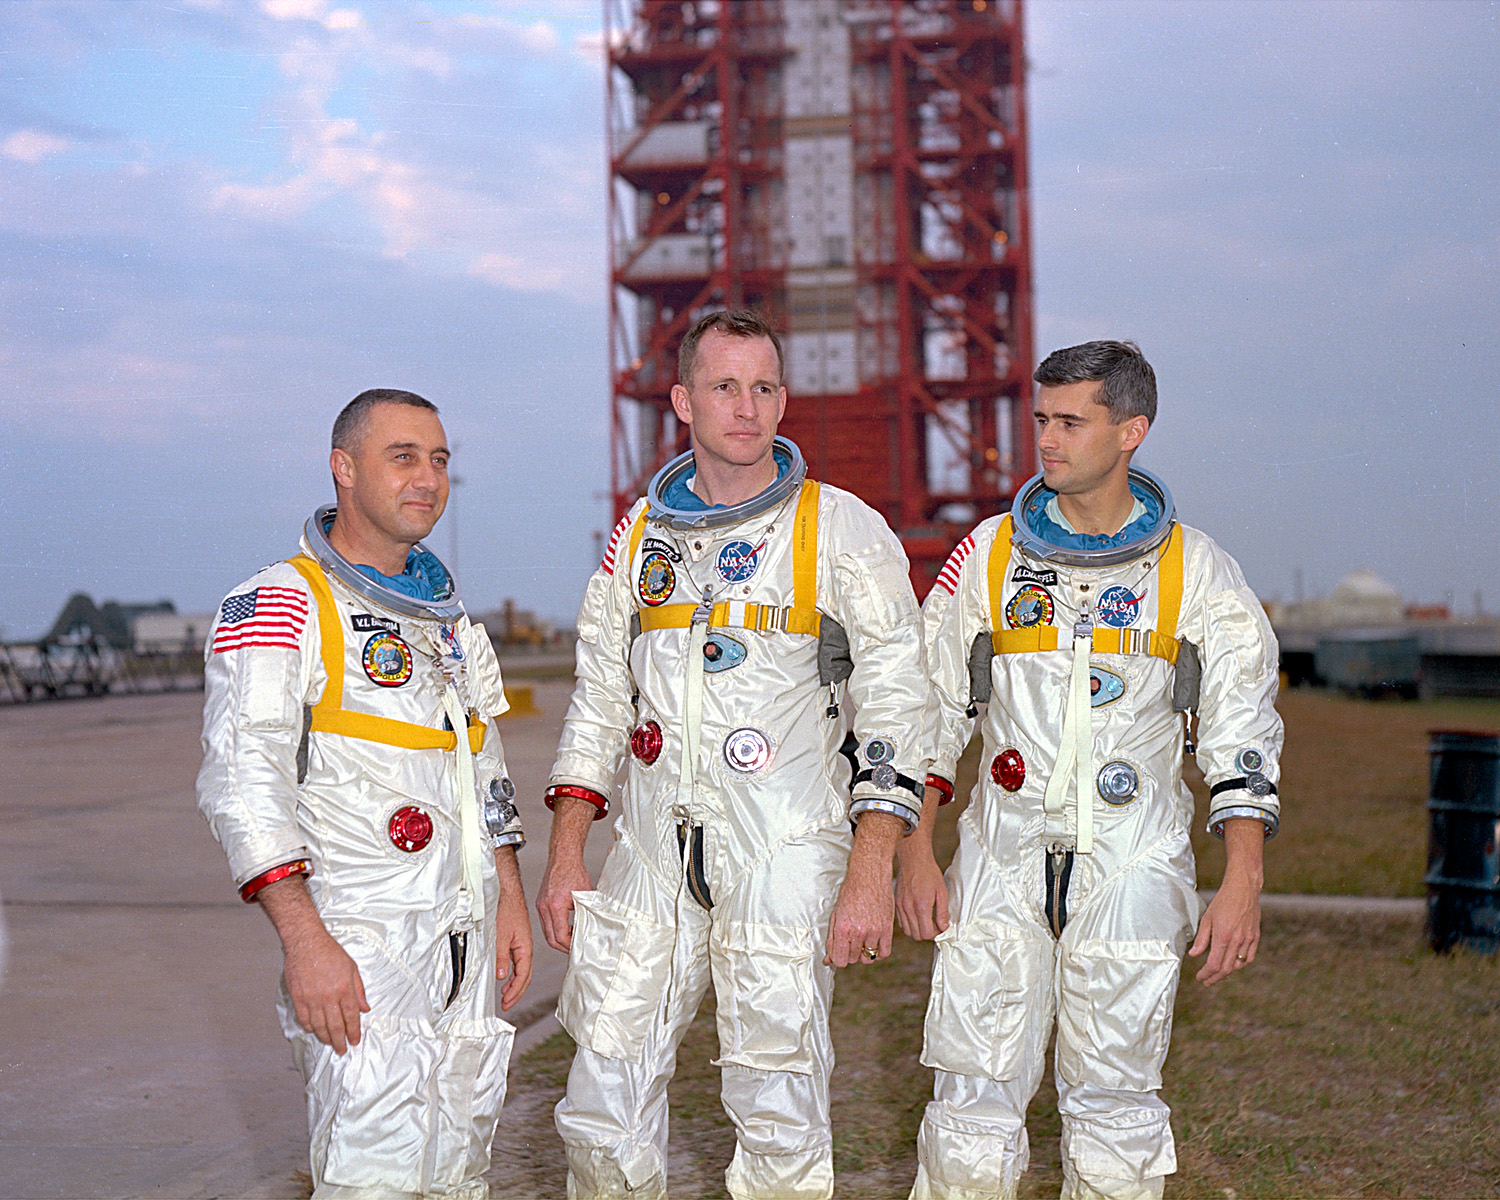 Apollo 1 — Disaster on the Pad